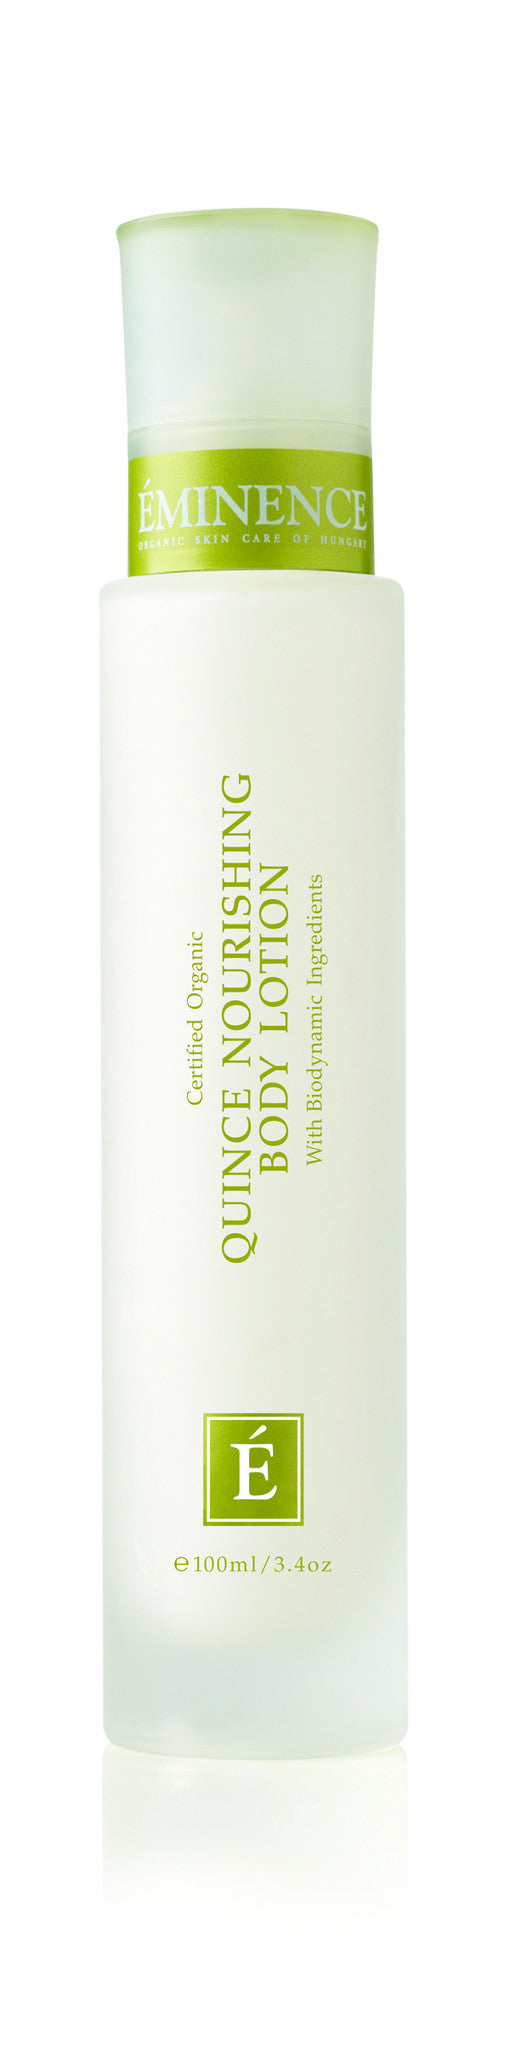 Quince Nourishing Body Lotion - Organic Skin Therapy